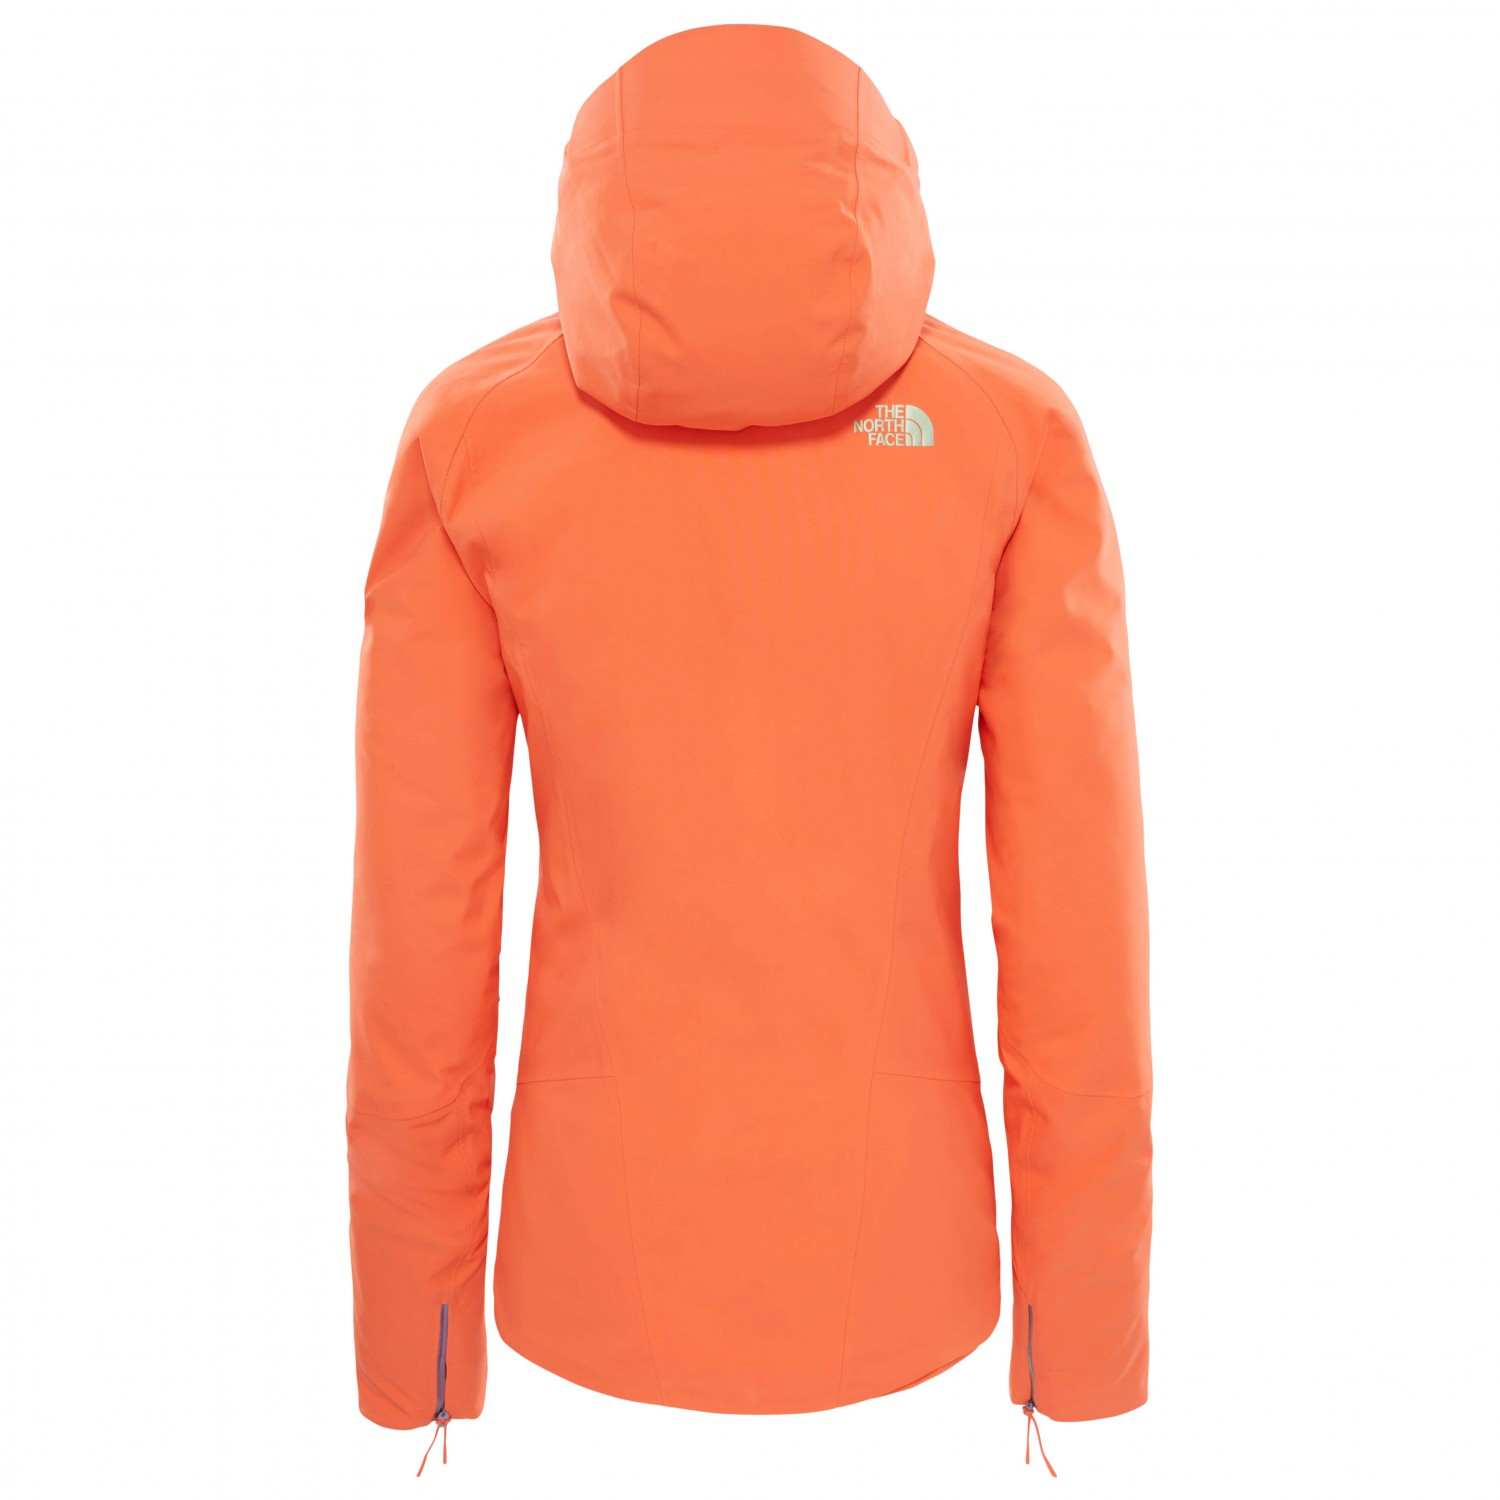 2f9d69b52 The North Face Anonym Jacket - Ski Jacket Women's   Buy online ...